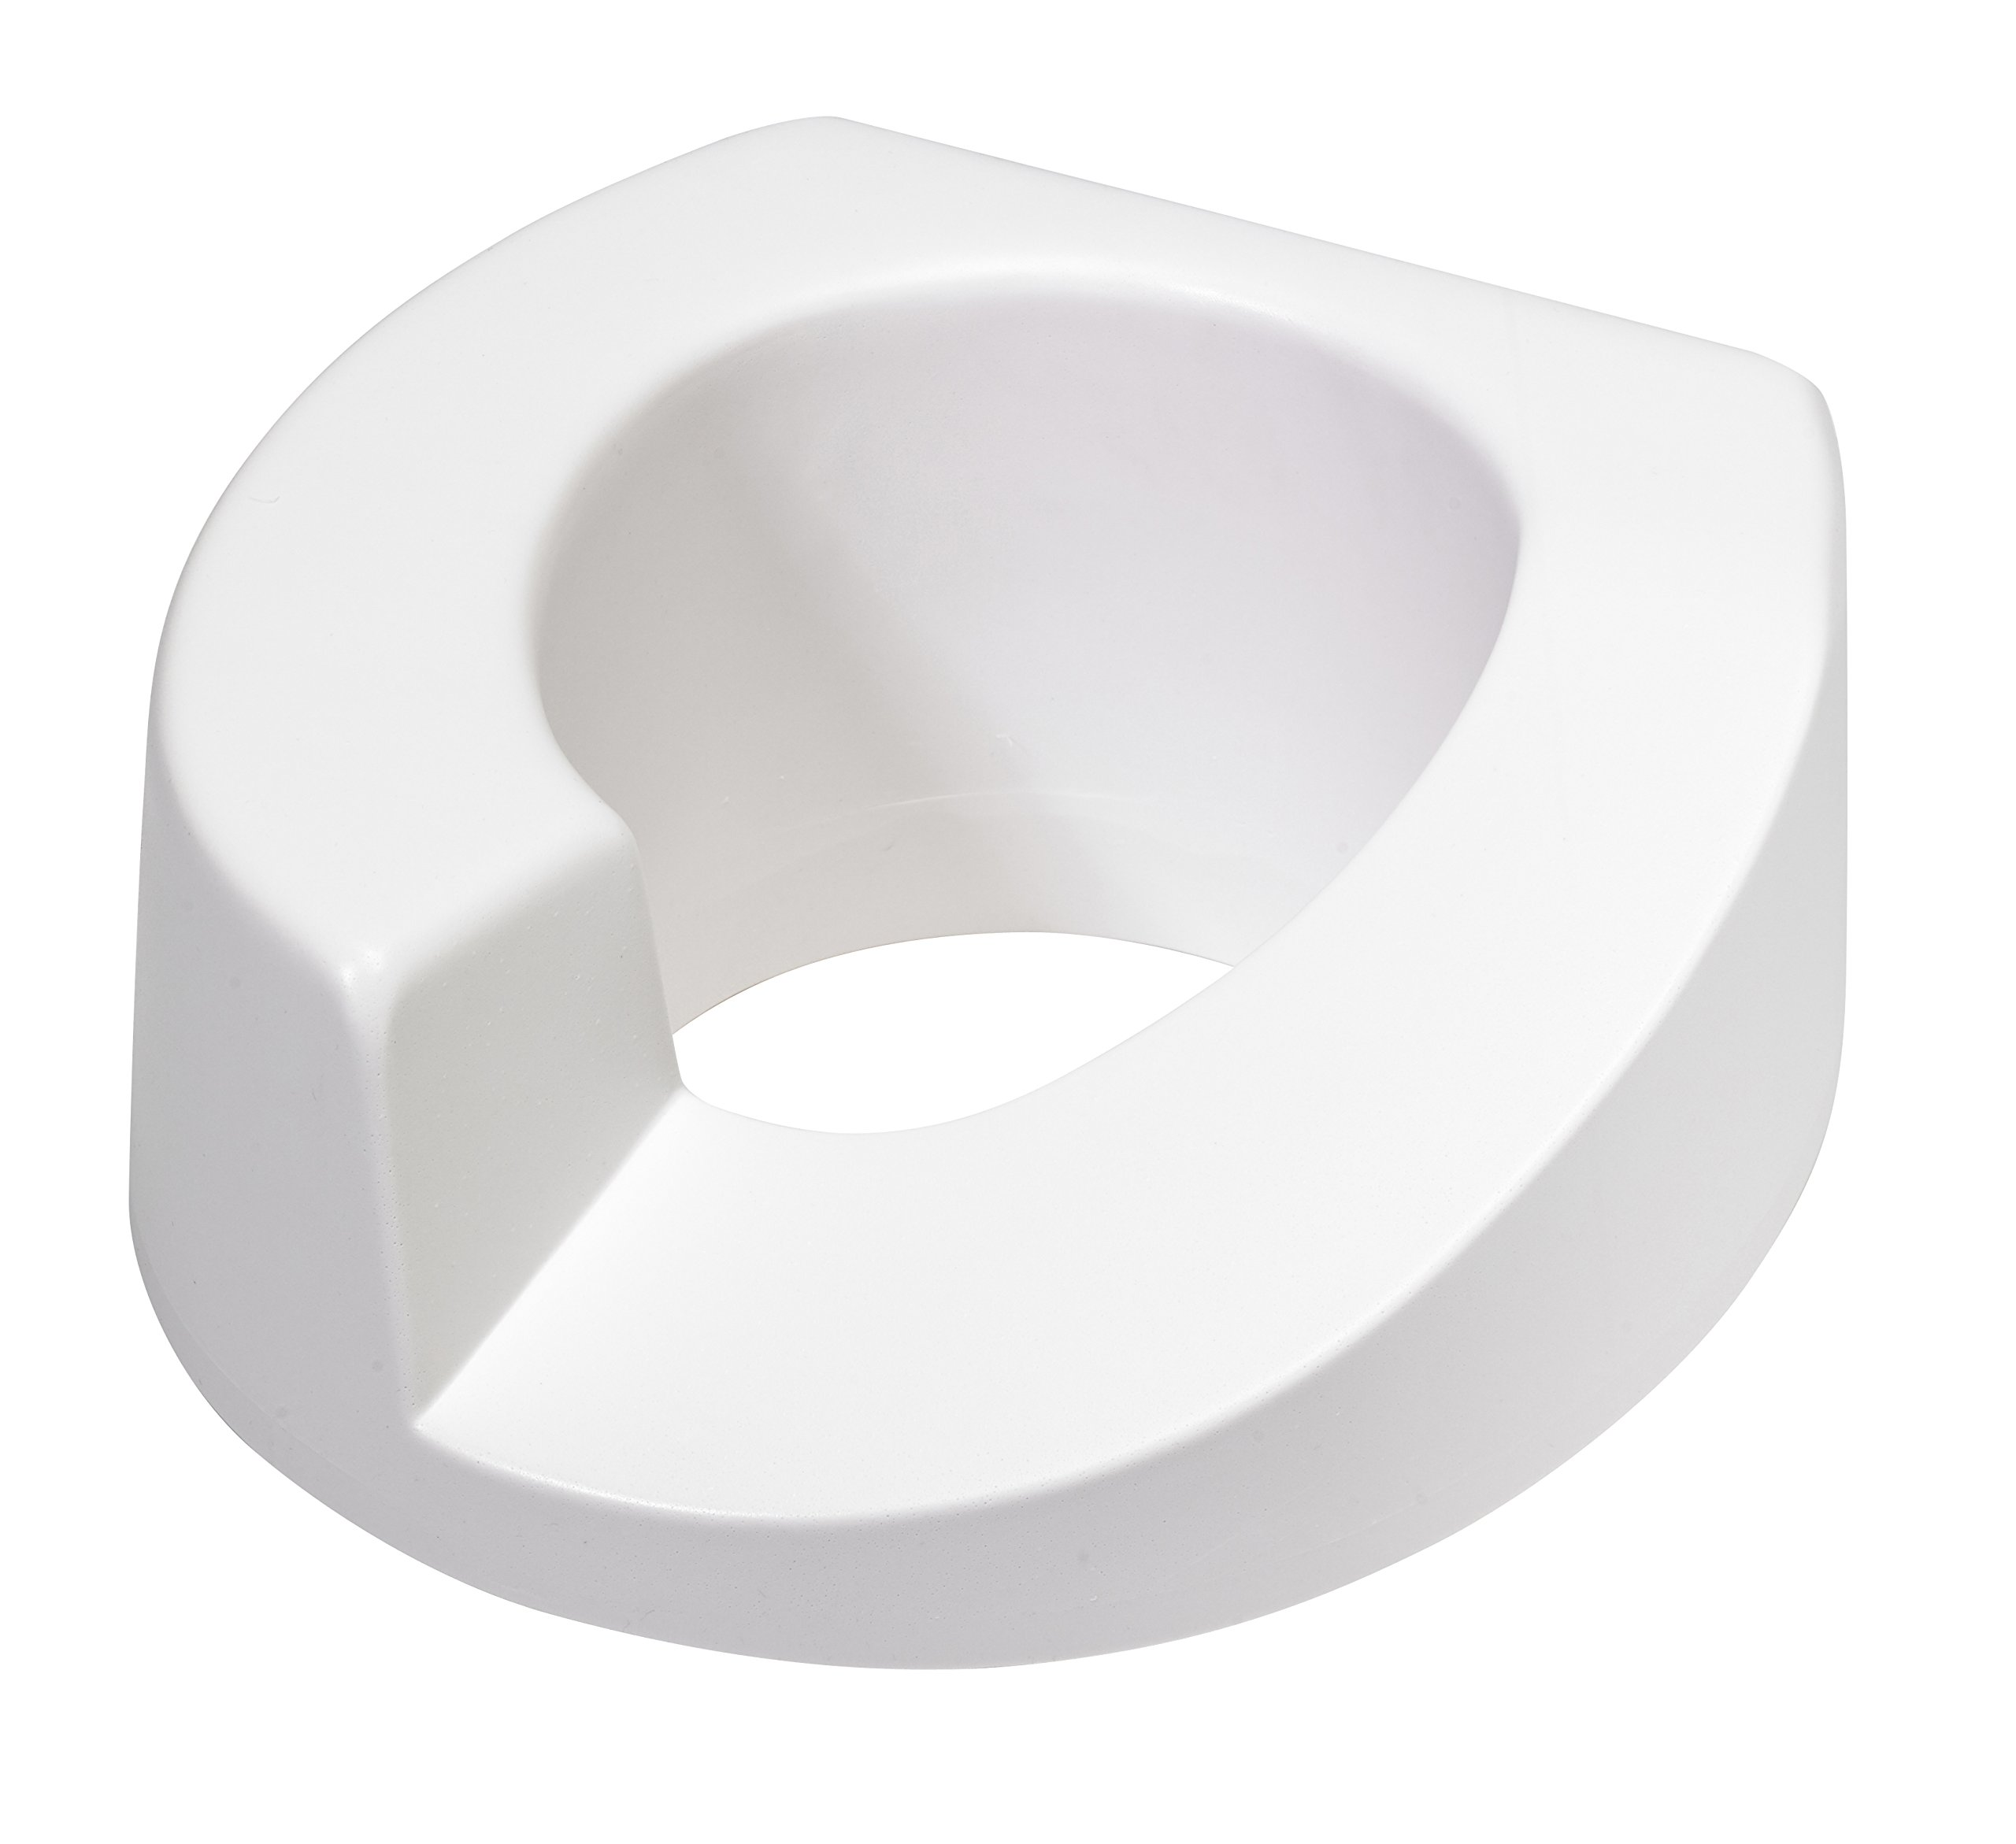 Maddak Elevated Toilet Seat, Left Cutout by SP Ableware